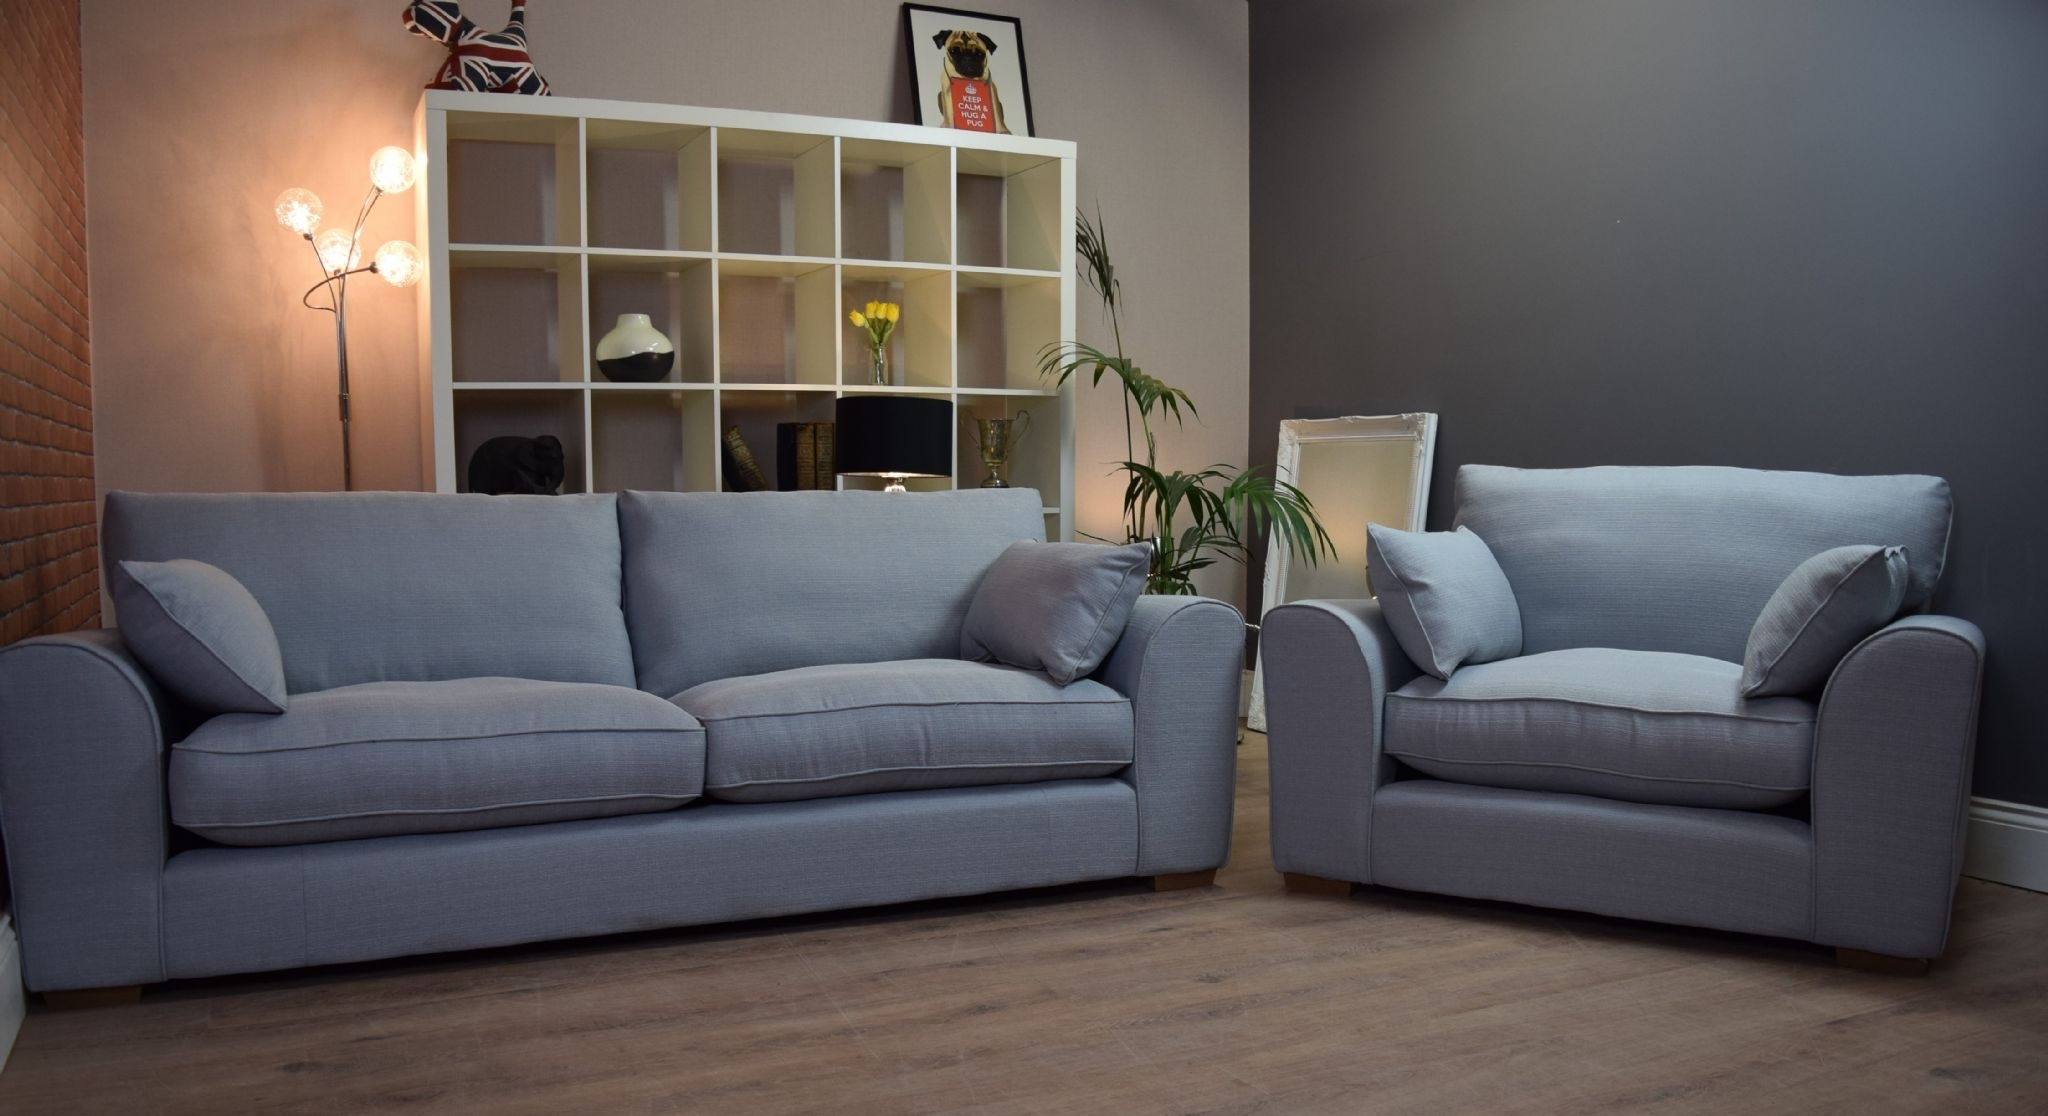 Set New Ashdown 3 Seater Sofa & Cuddle Chair Set - Duck Egg Blue with 3 Seater Sofas and Cuddle Chairs (Image 8 of 10)